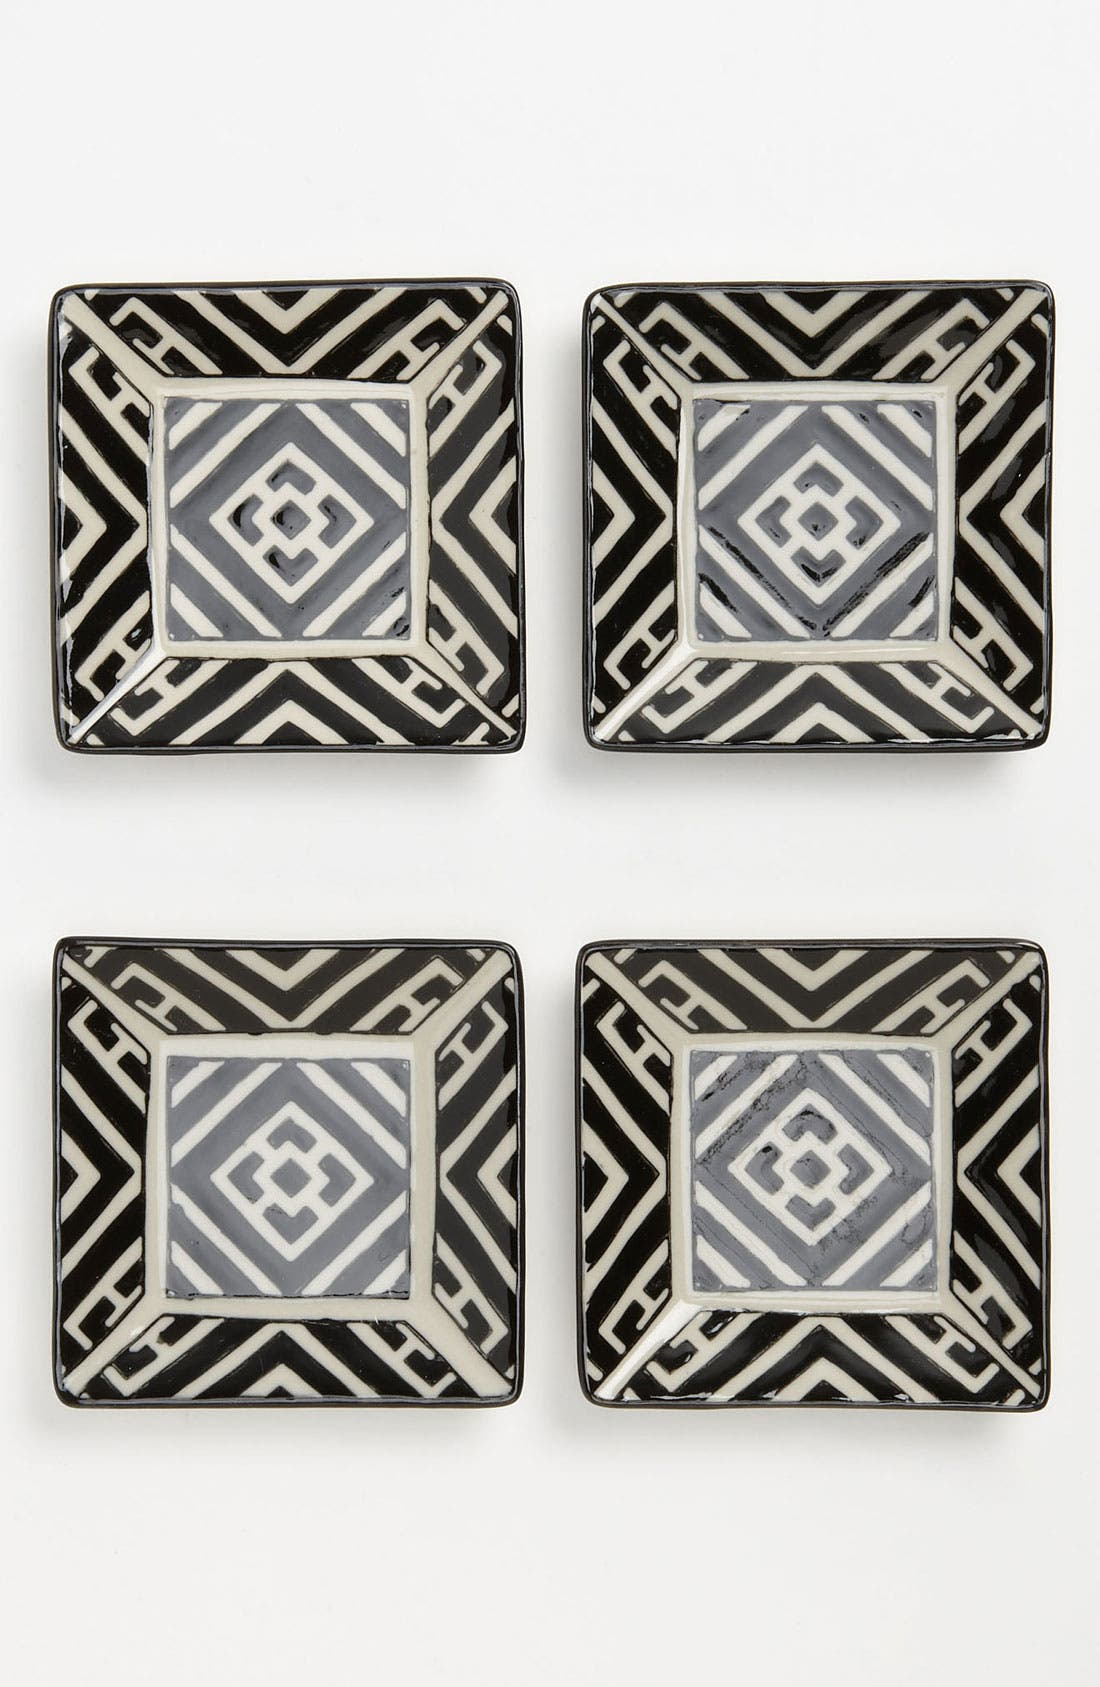 Main Image - Black & White Appetizer Plates (Set of 4)